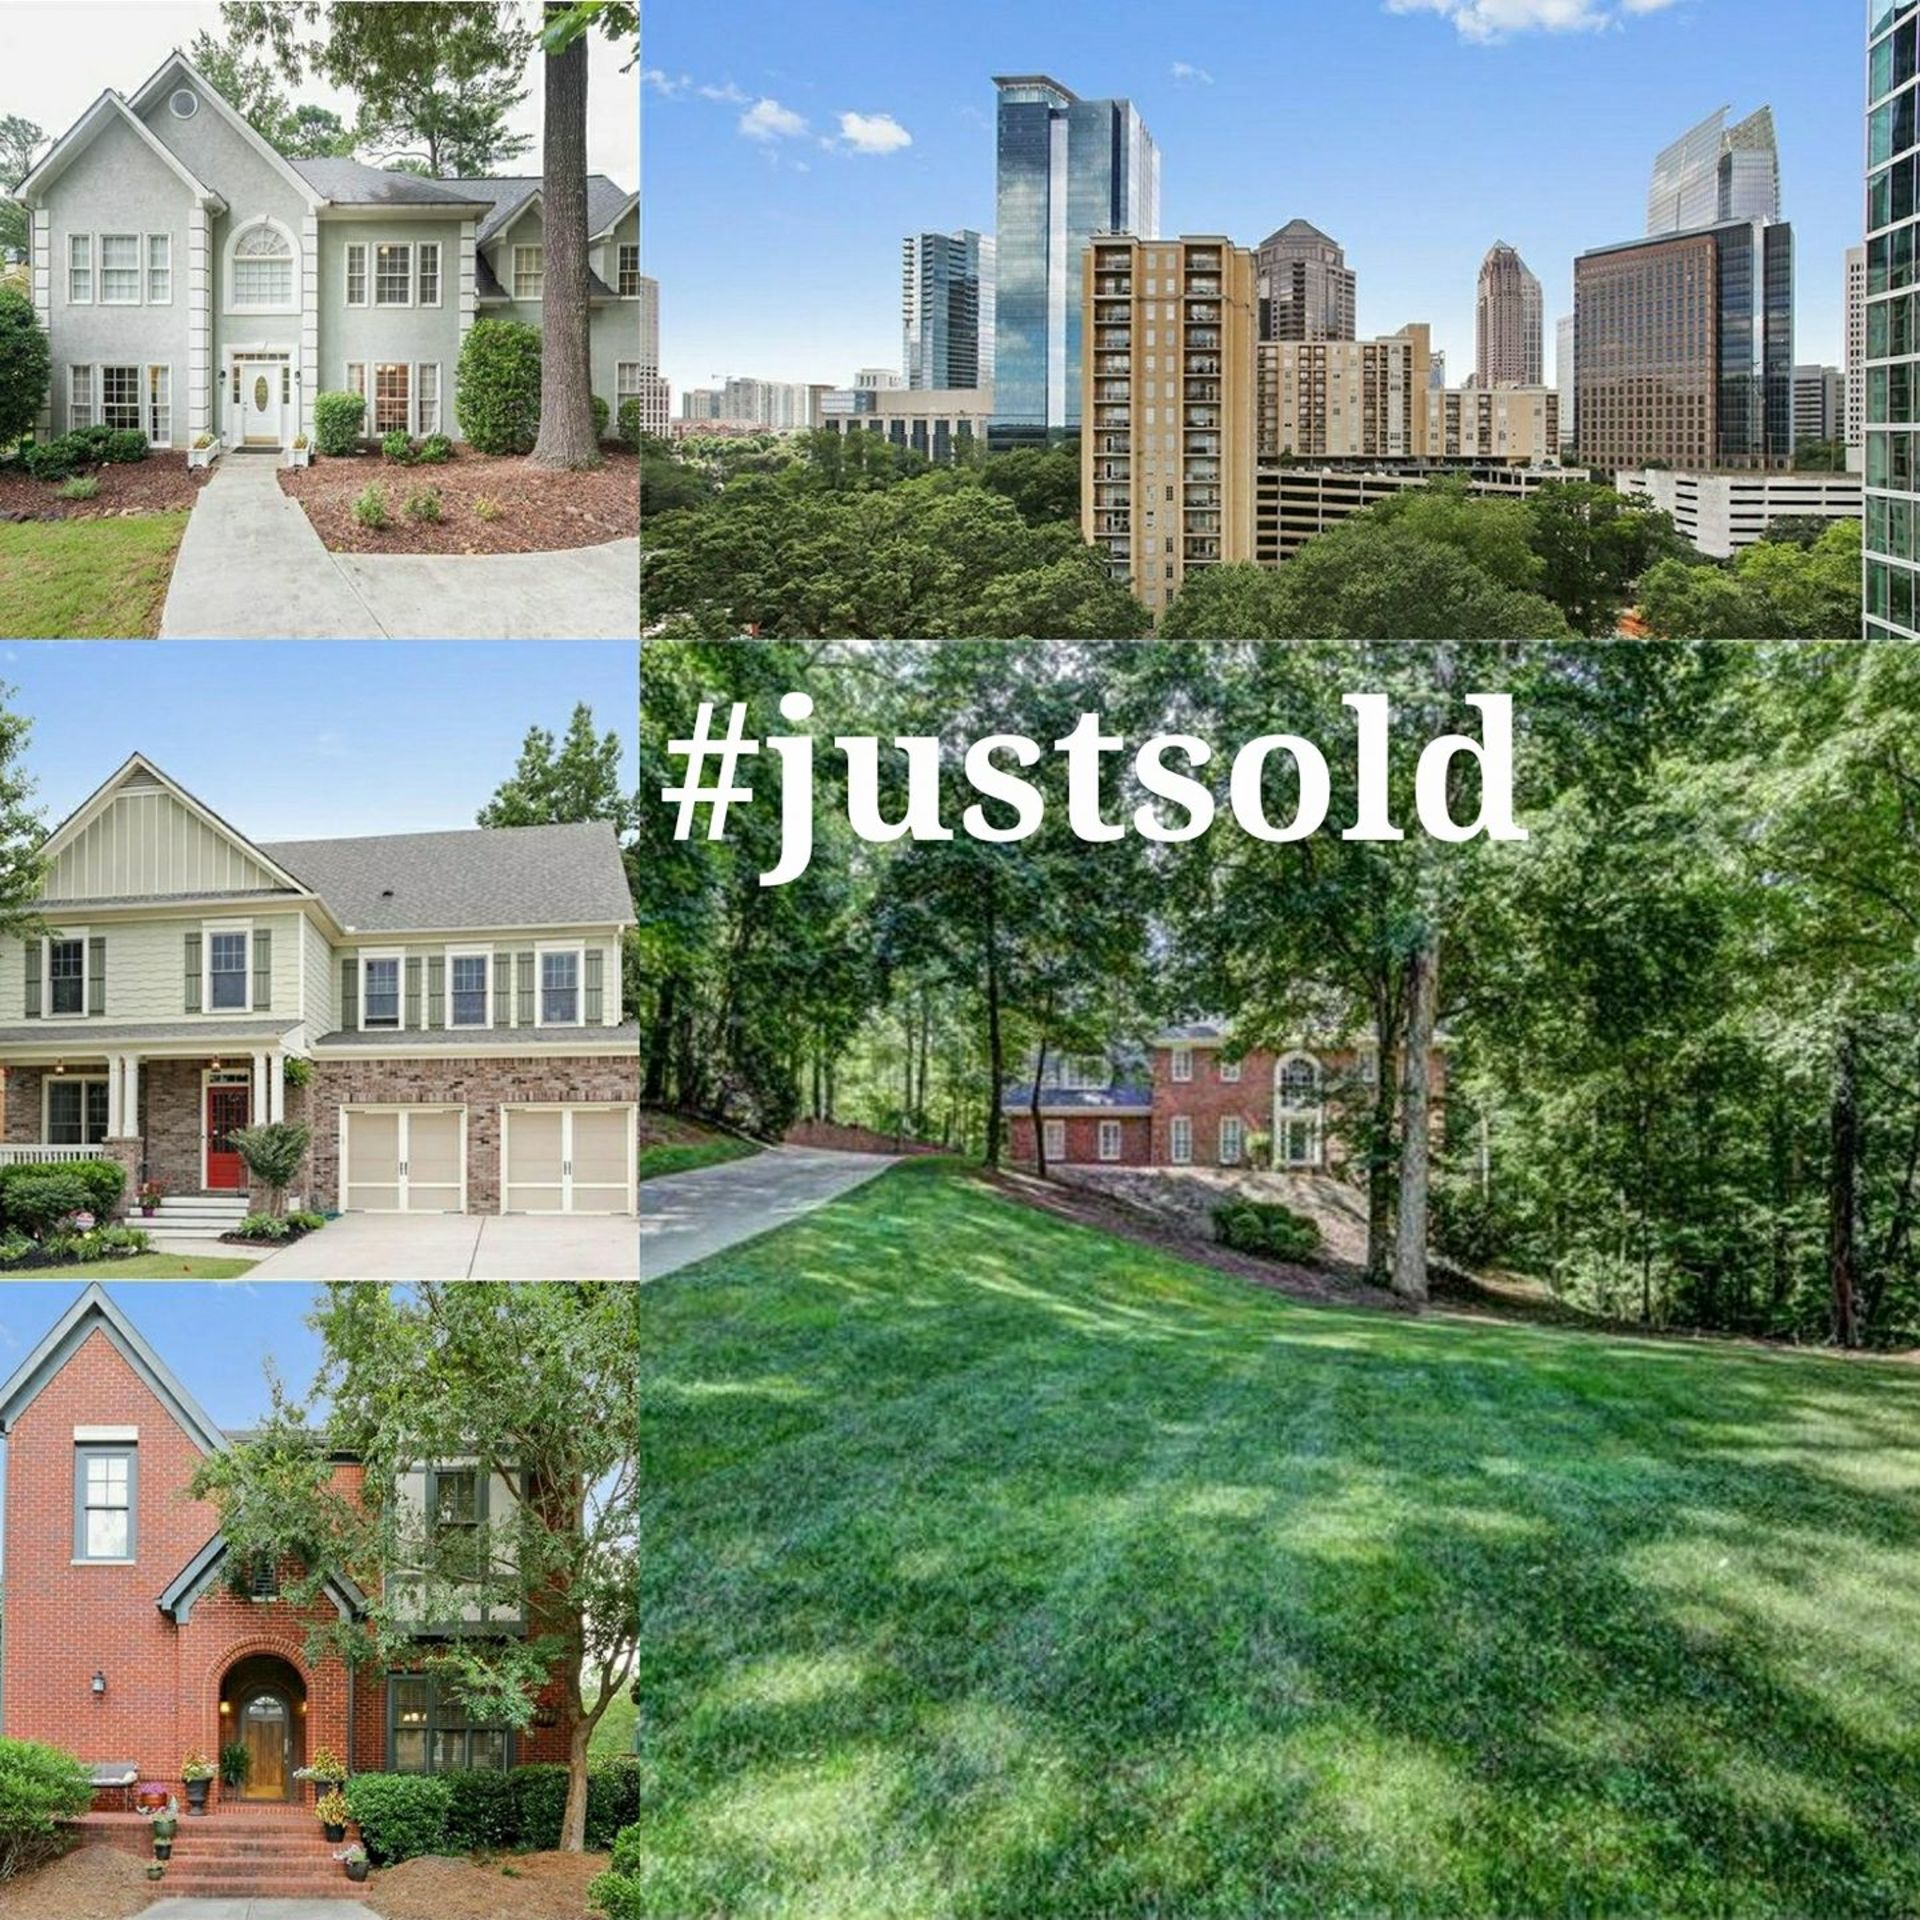 Just Sold in Roswell, Marietta, Midtown, Douglasville, AND Lithia Springs